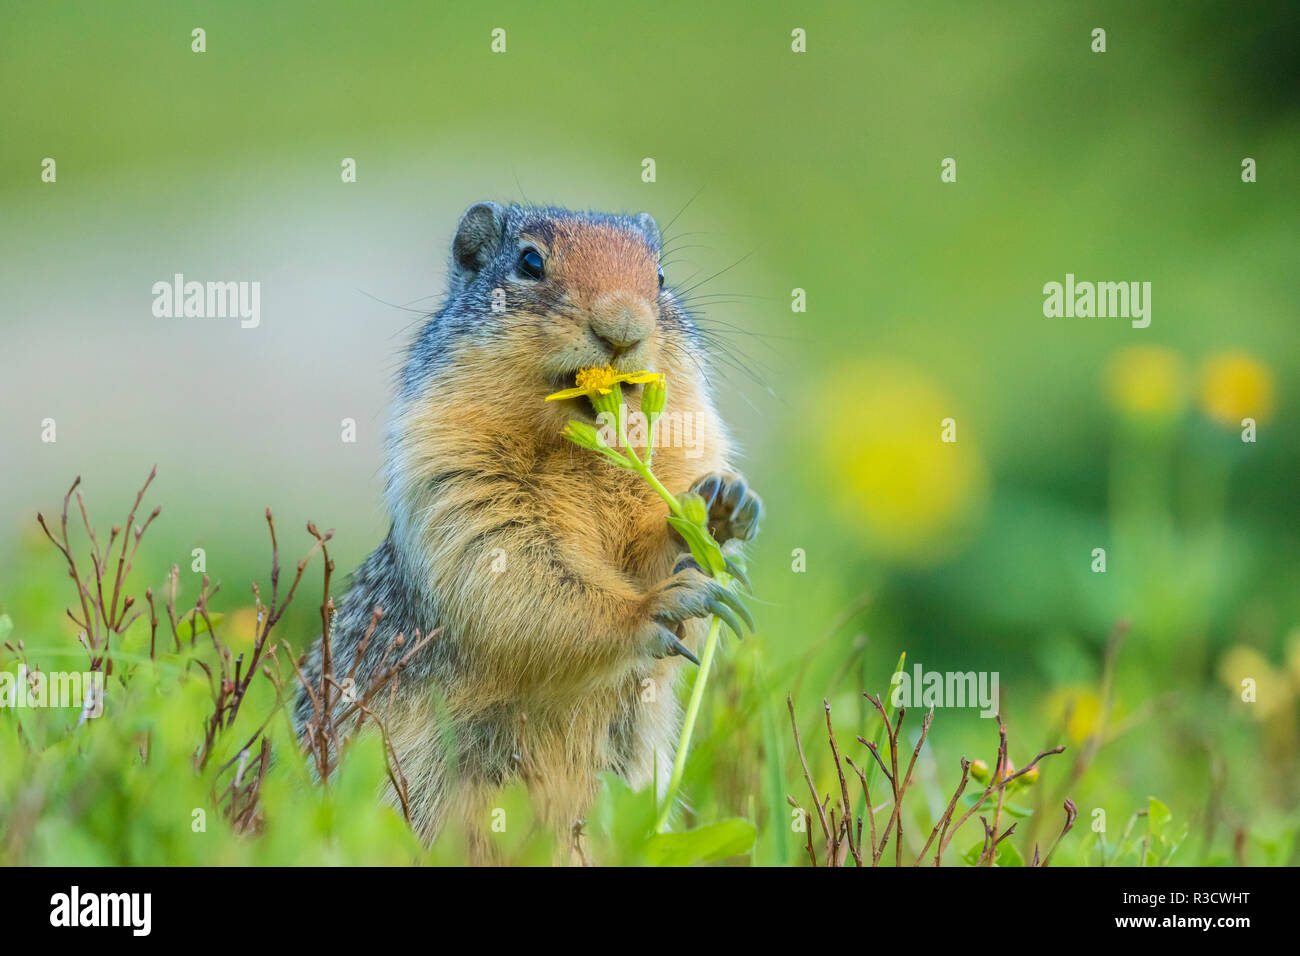 USA, Montana, Glacier National Park. Columbian ground squirrel eating flower. - Stock Image